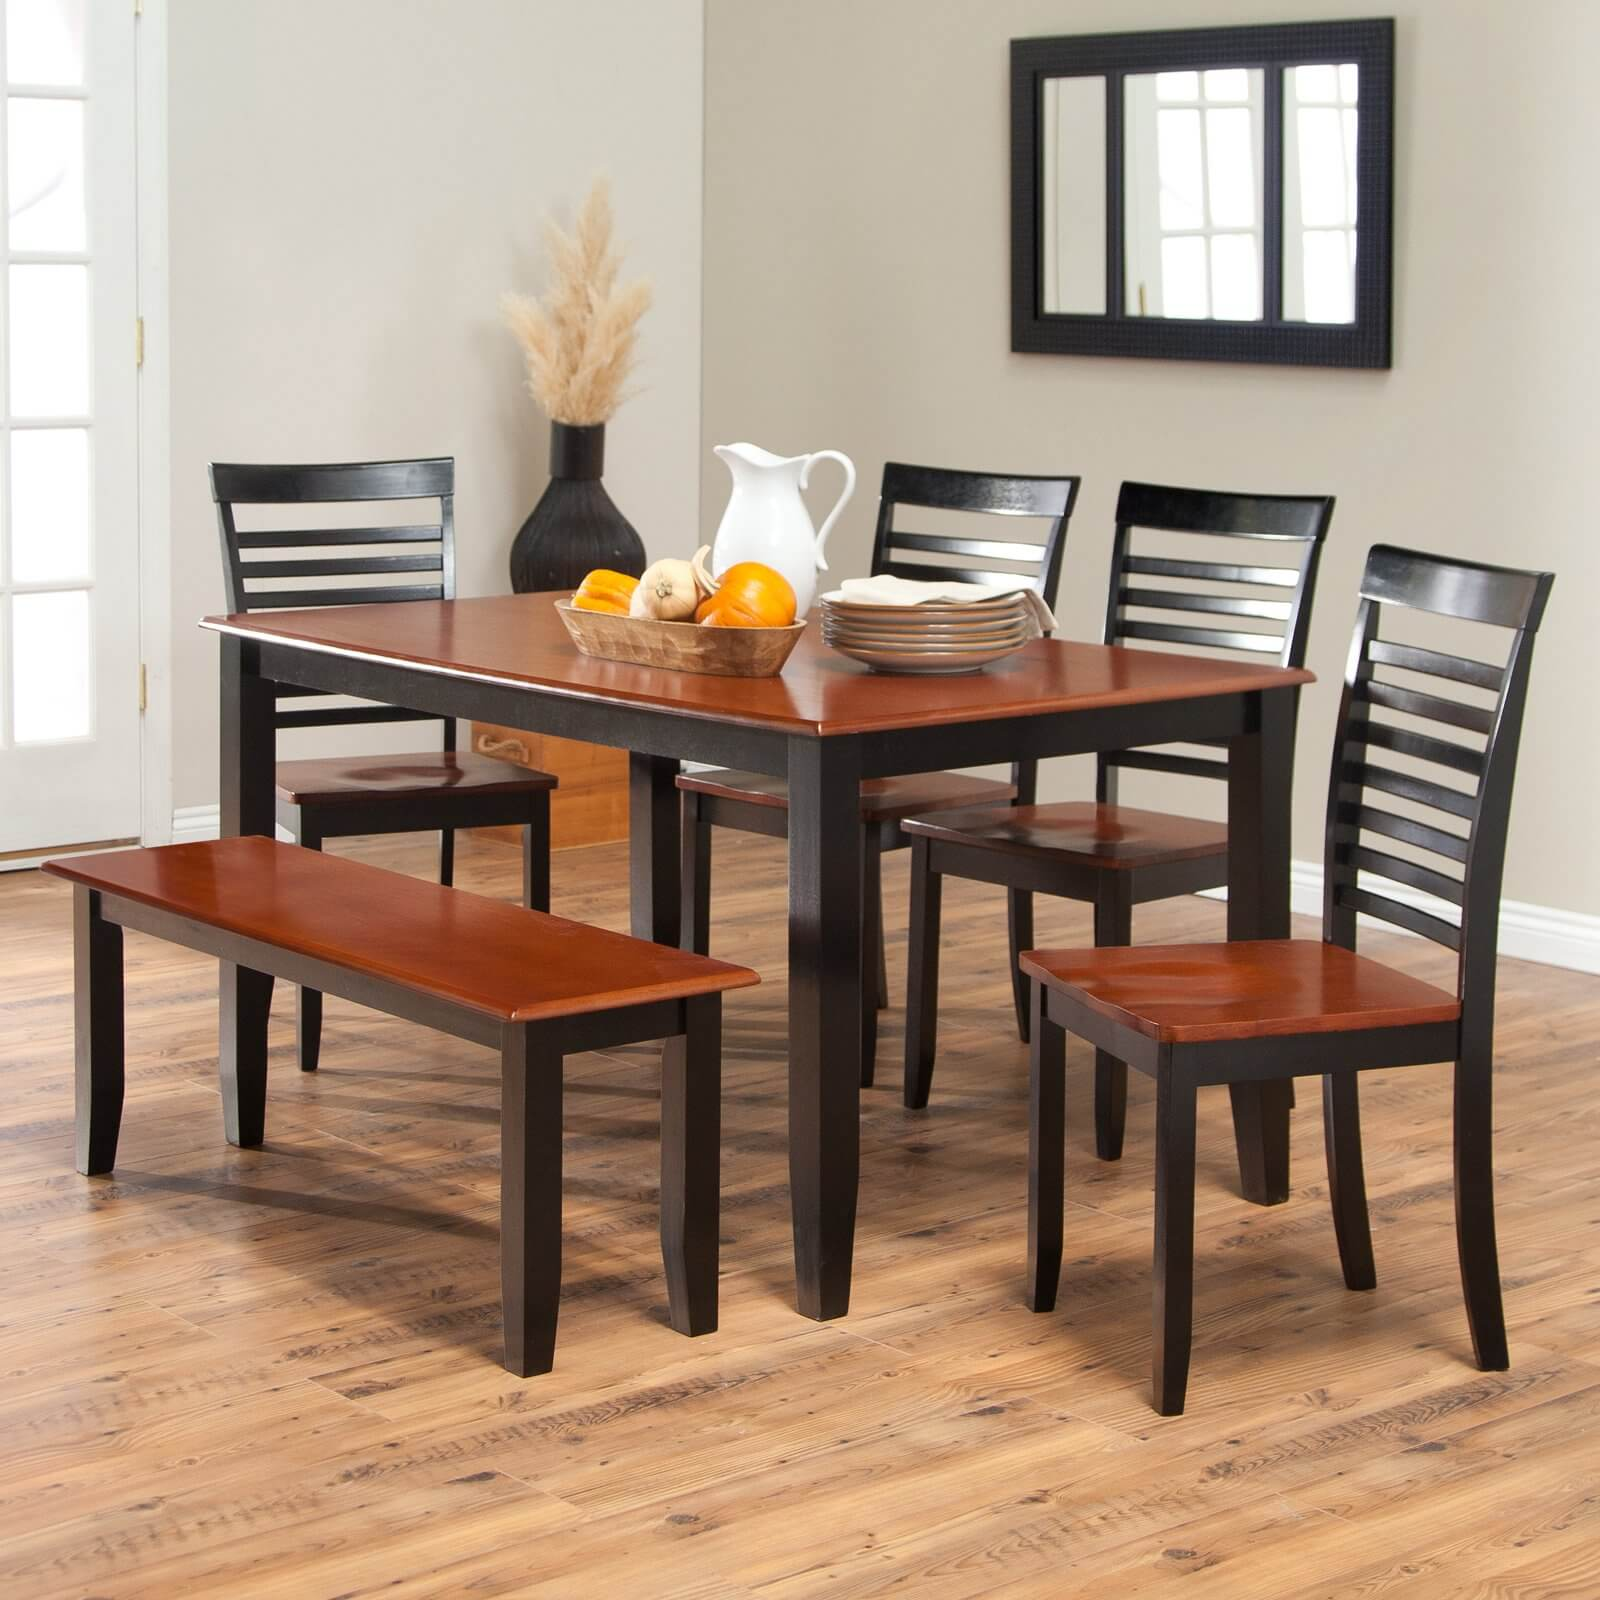 Simple two-toned dining set with bench. The seats and table top are cherry